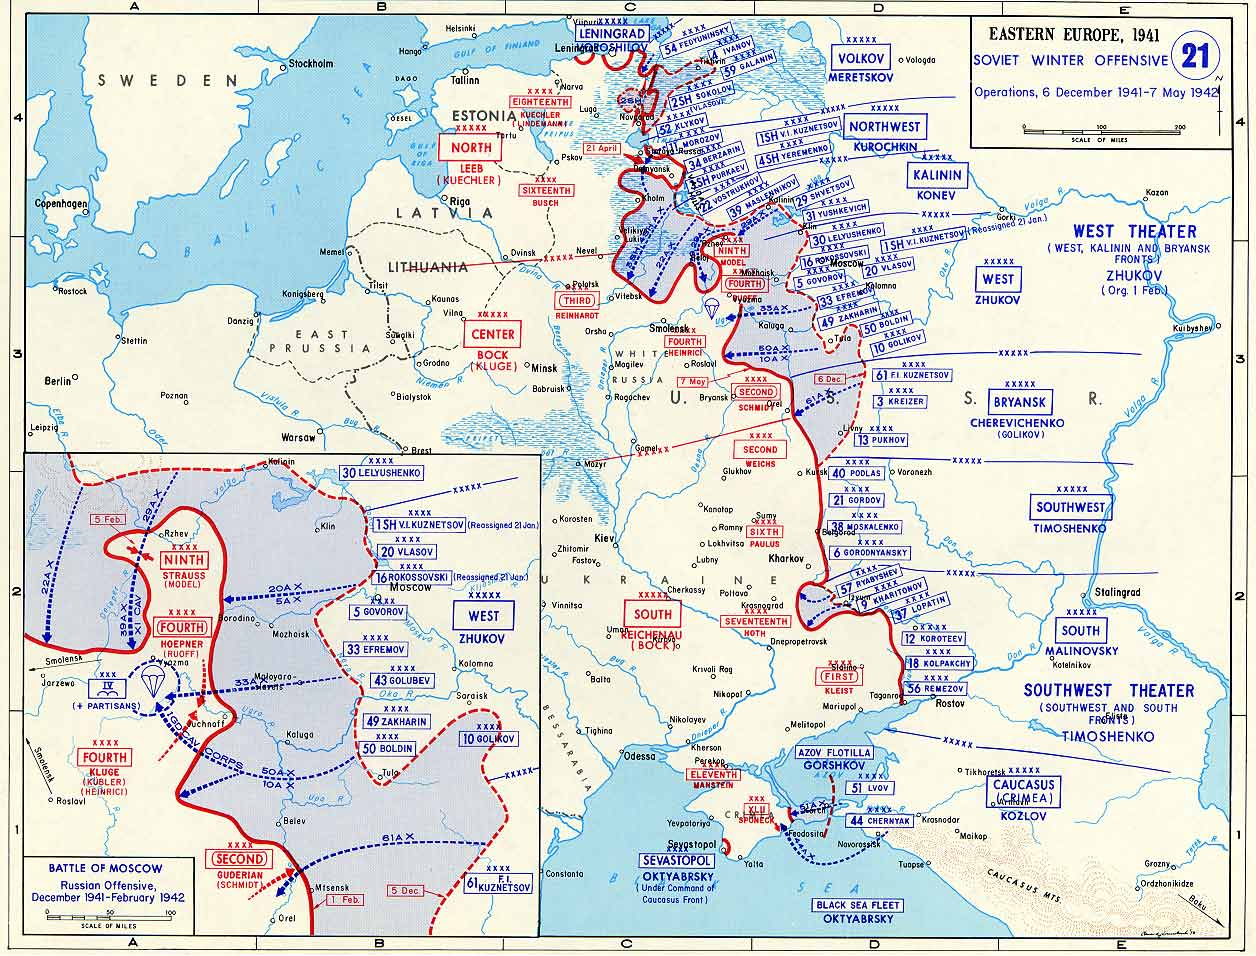 Map of soviet offensive against germany december 1941 may 1942 wwii war theatre maps soviet offensive against germany gumiabroncs